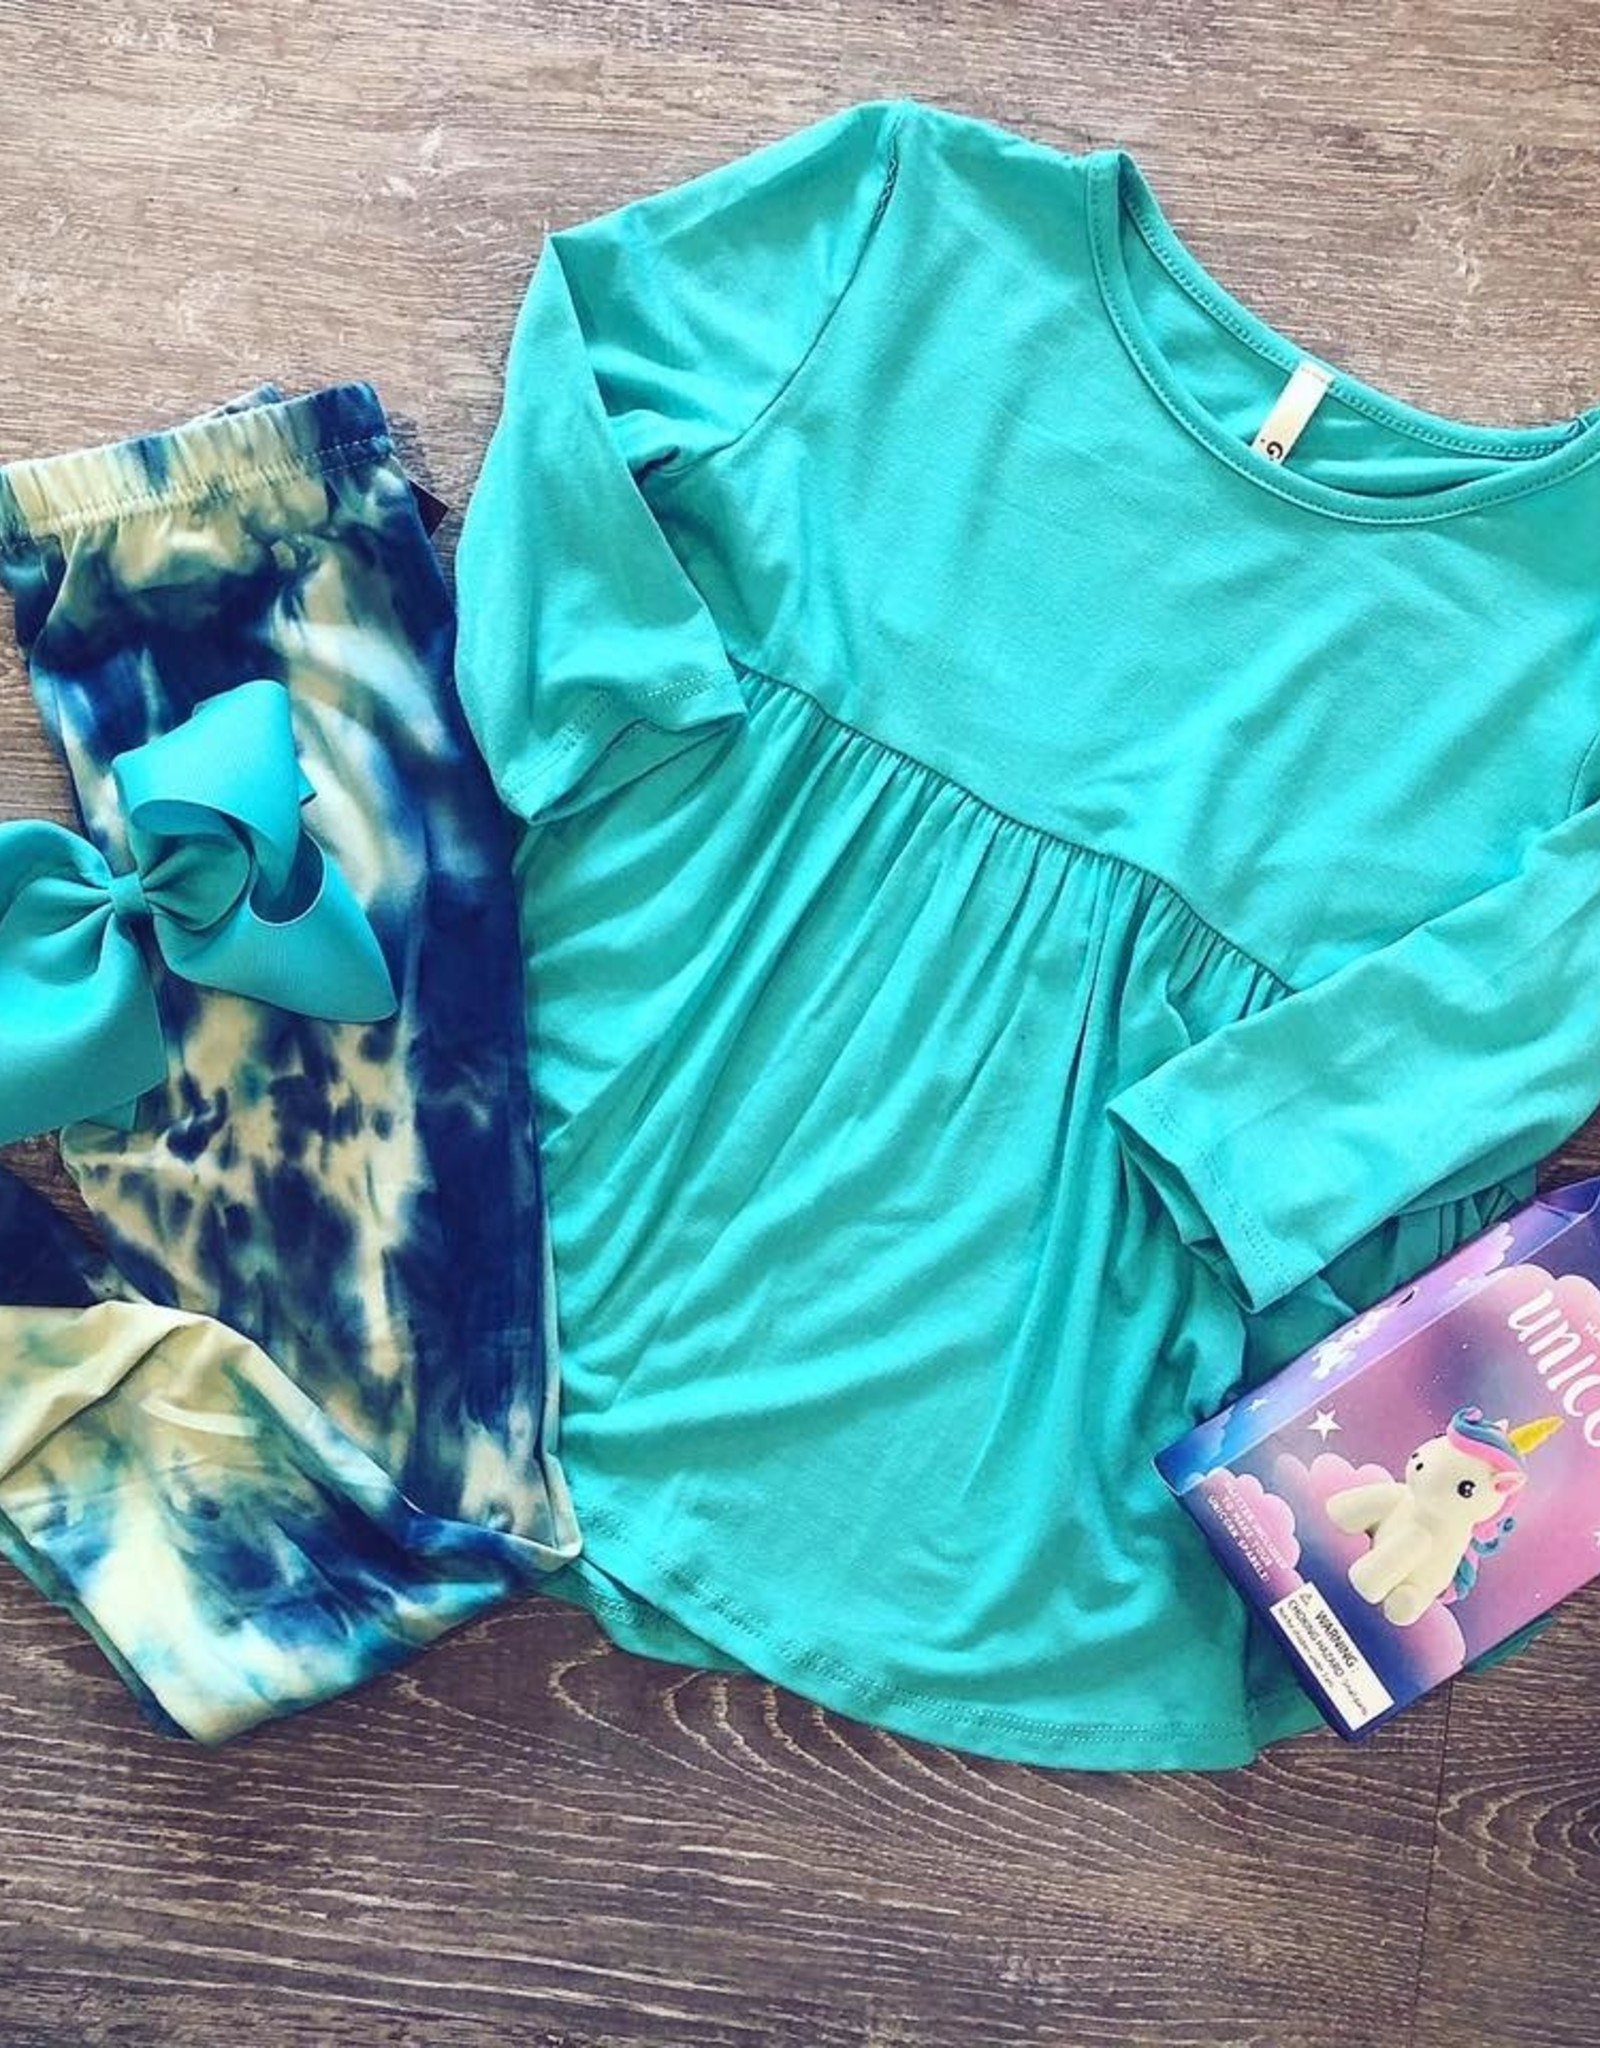 G to G baby doll tunic top 3/4 sleeves in mint